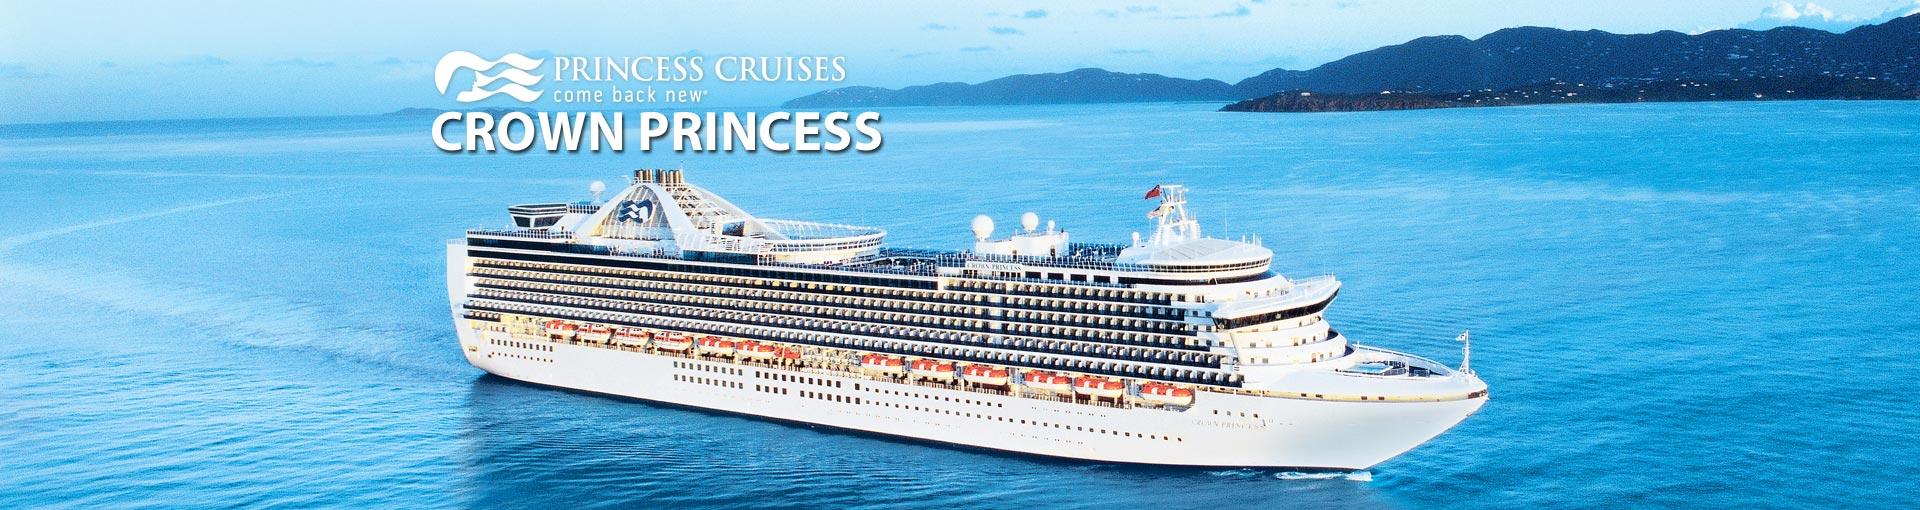 Crown princess cruise ship 2017 and 2018 crown princess princess cruises crown princess cruise ship baanklon Image collections